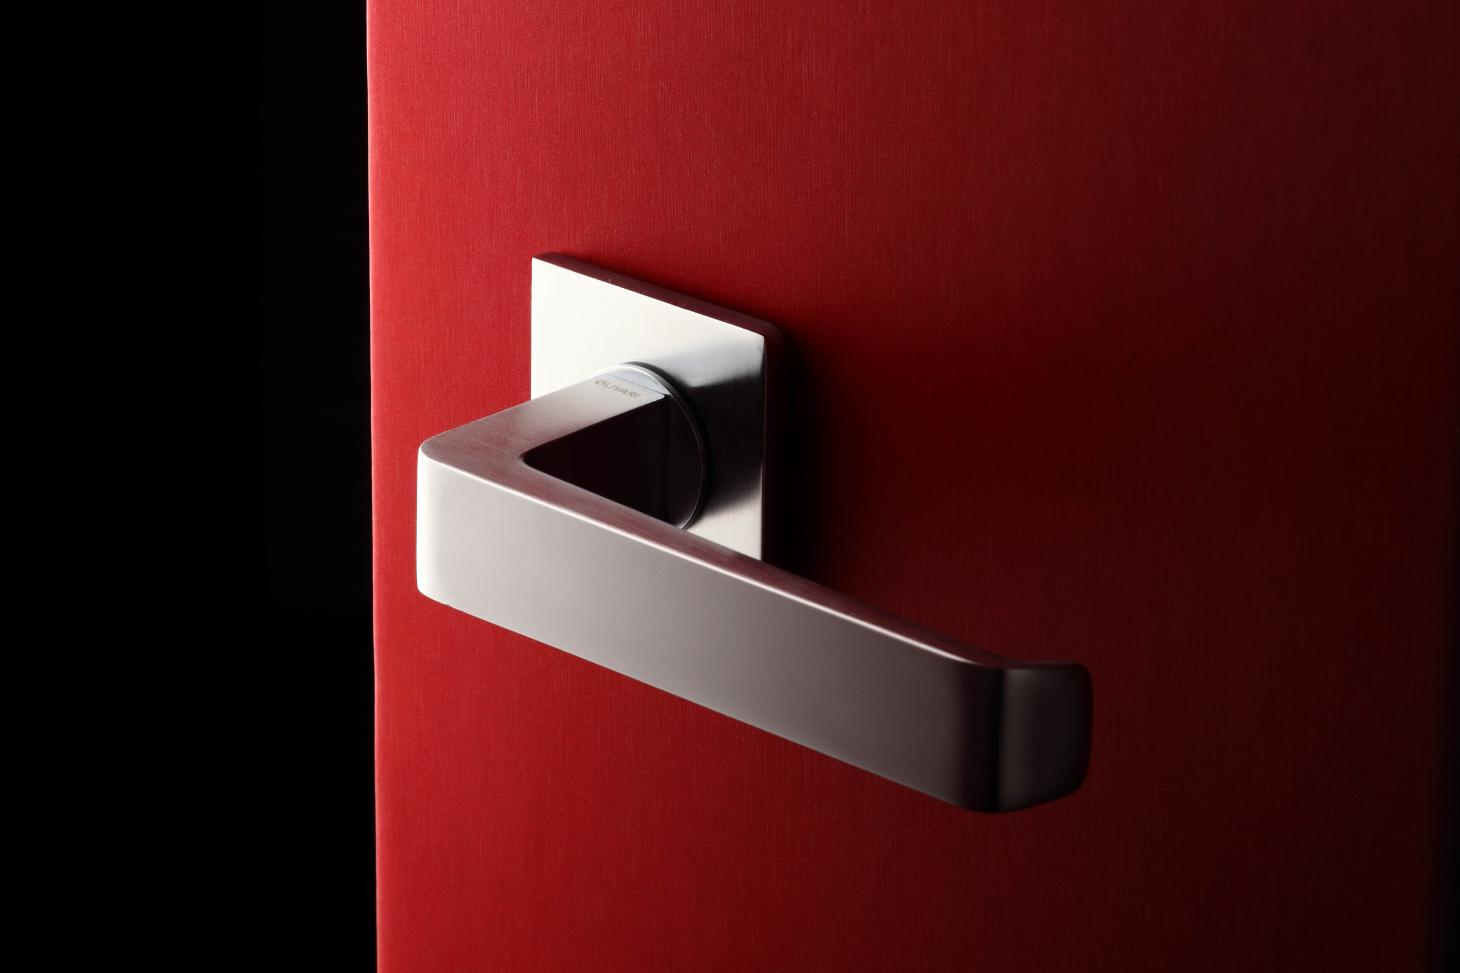 Door handle by Antonio Citterio for Olivari